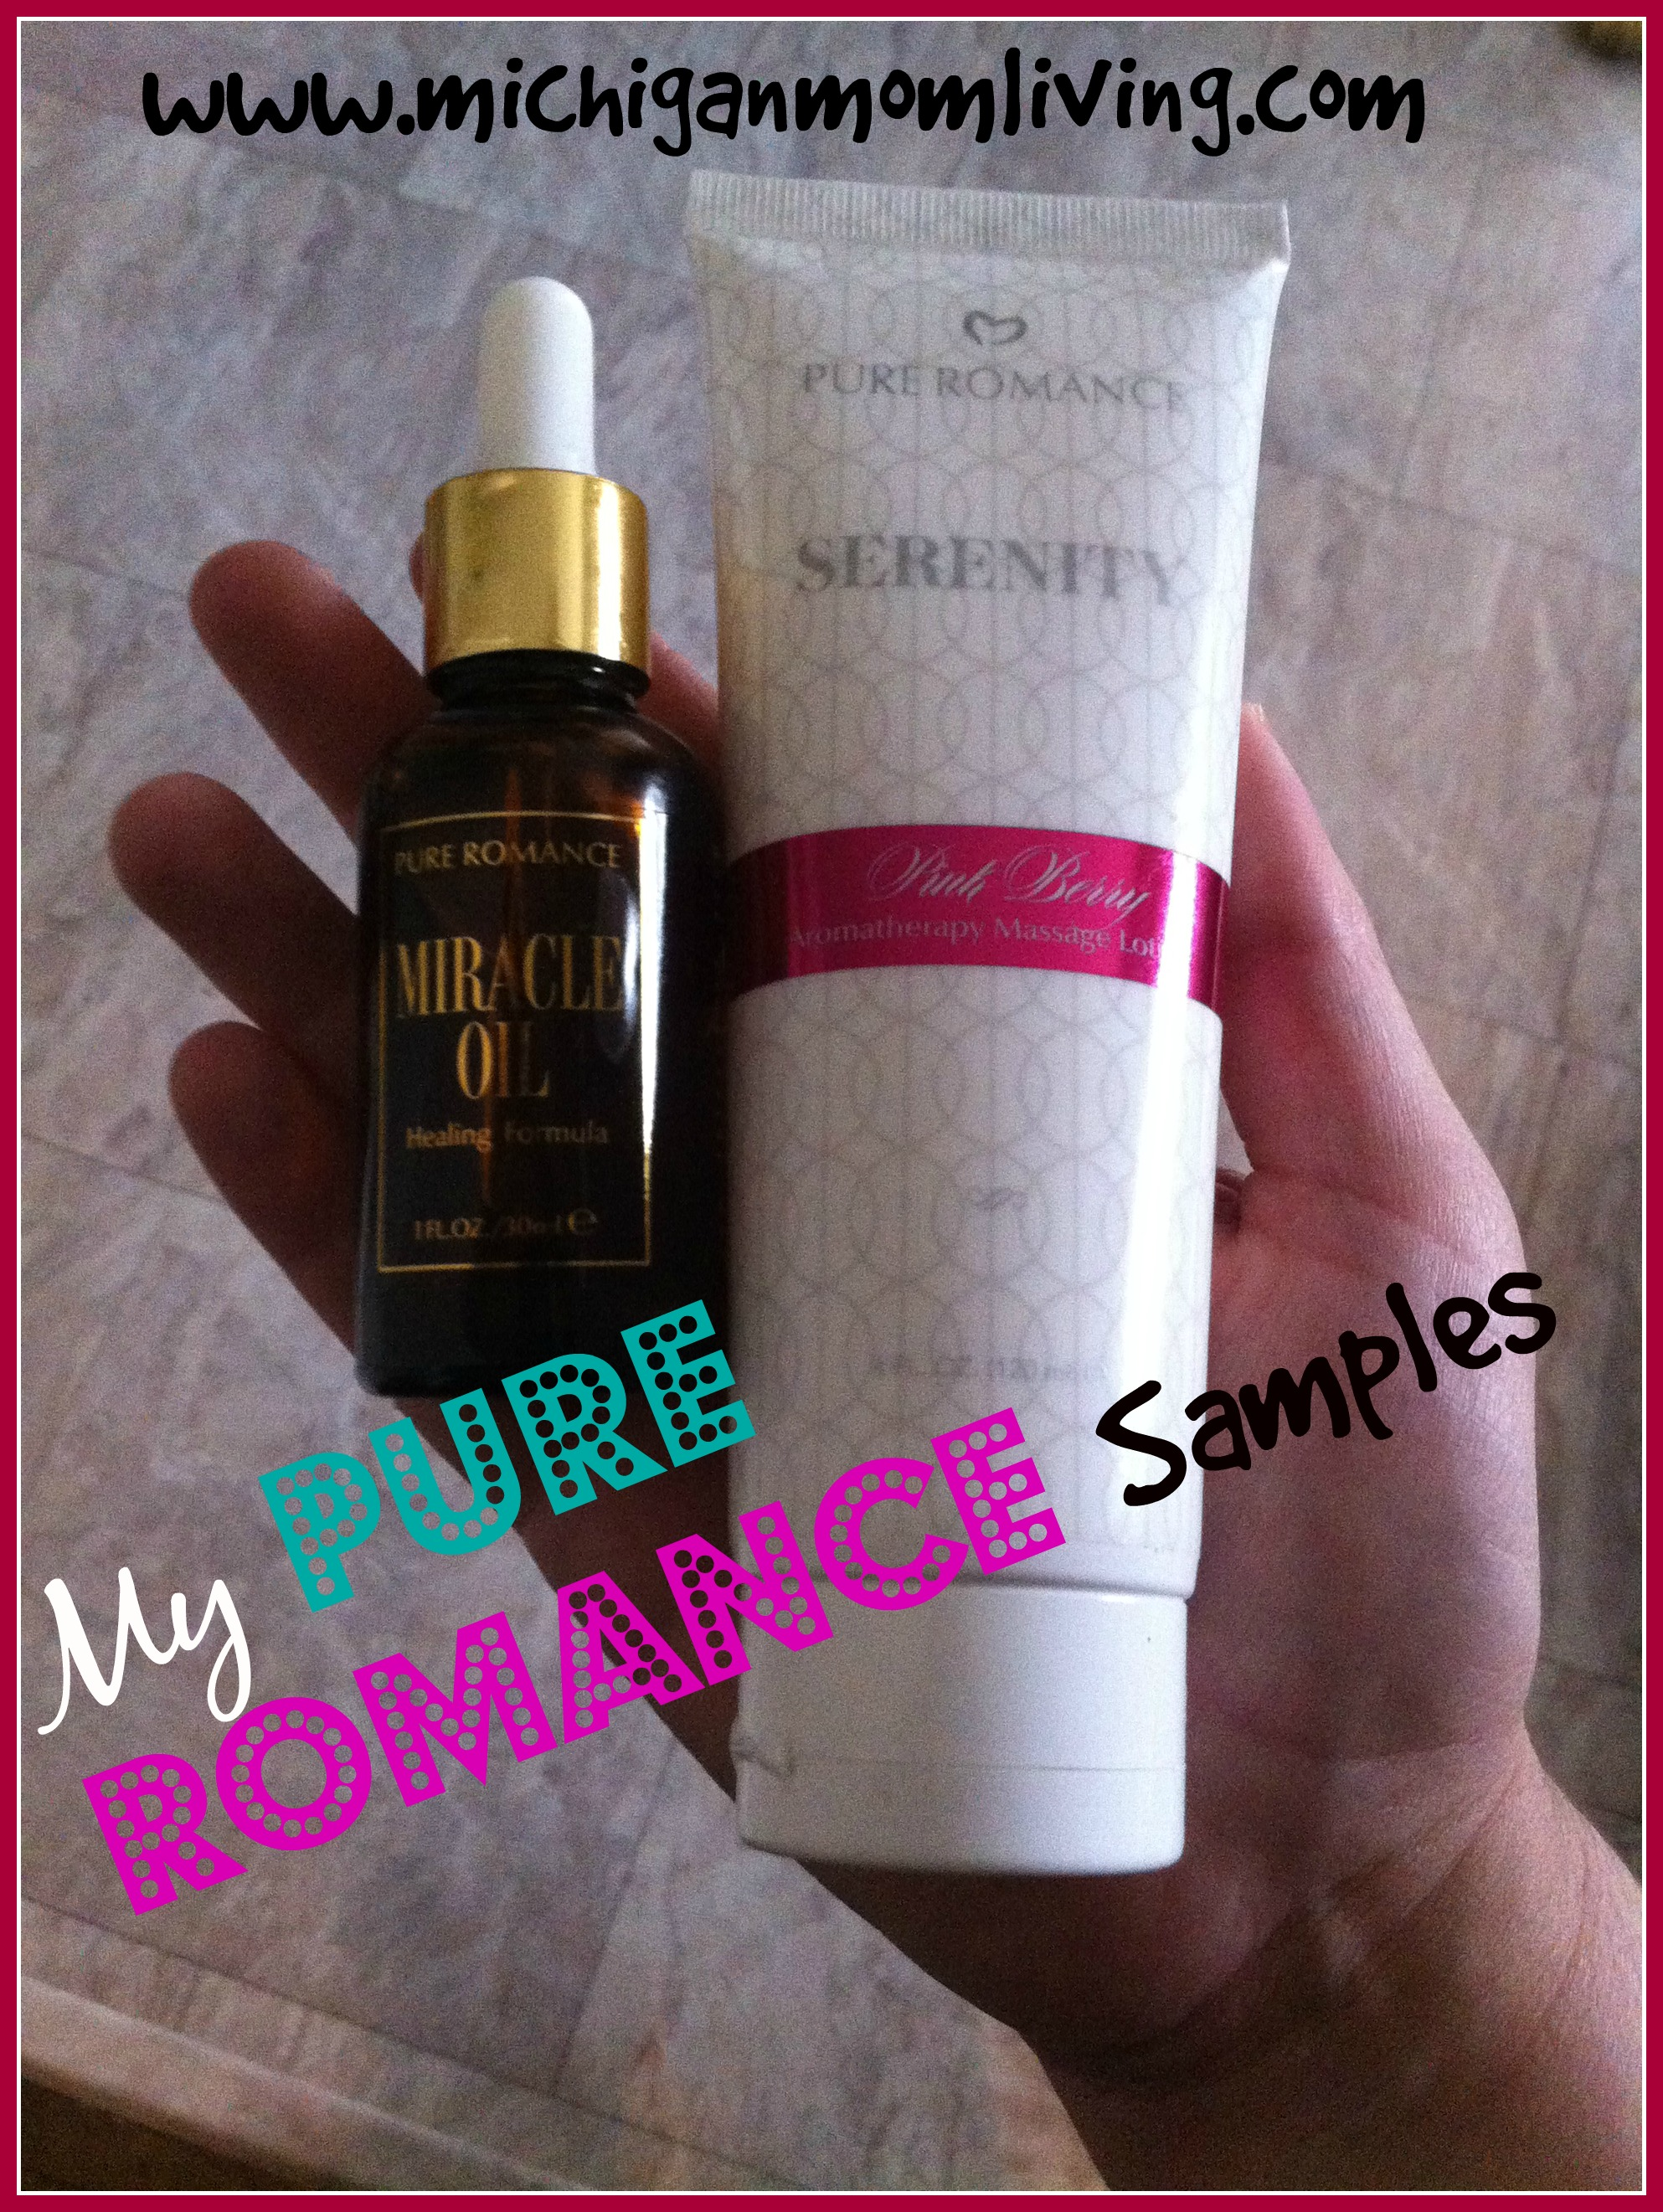 Miracle Oil and Aromatherapy Massage Lotion by Pure Romance {Review}